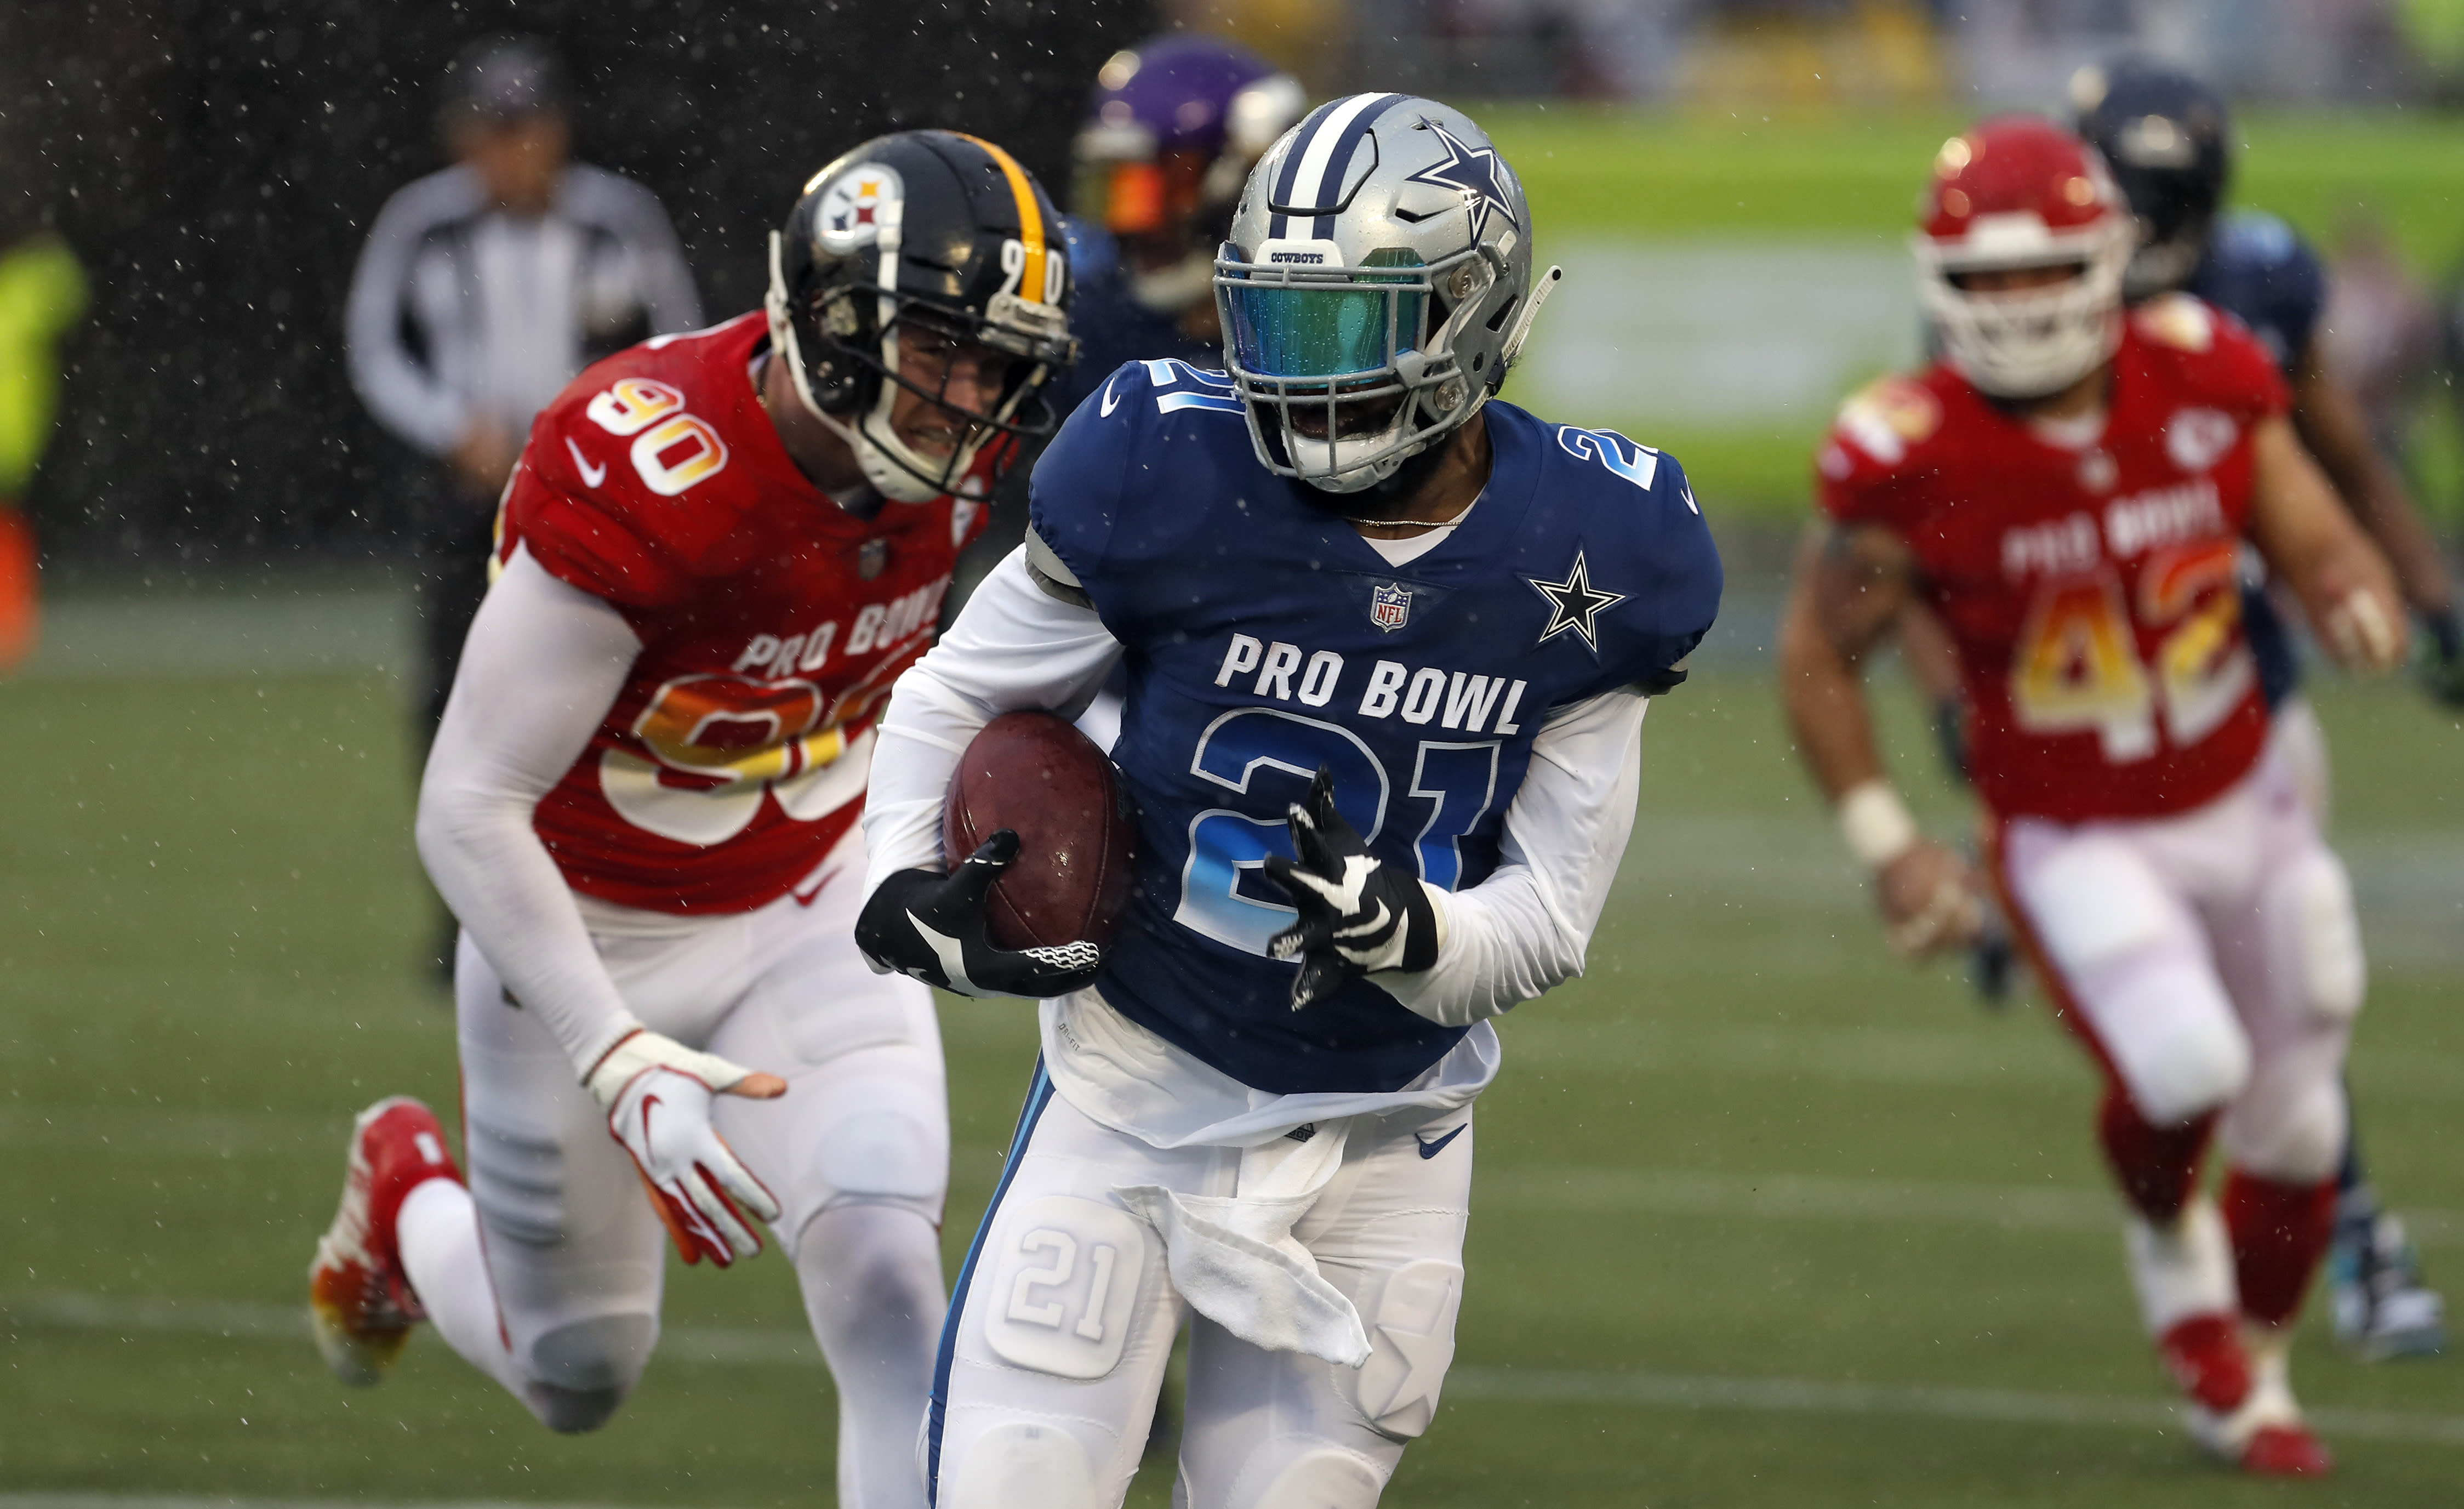 finest selection 288d8 ae6c9 Orlando is awarded fourth straight Pro Bowl, for 2020